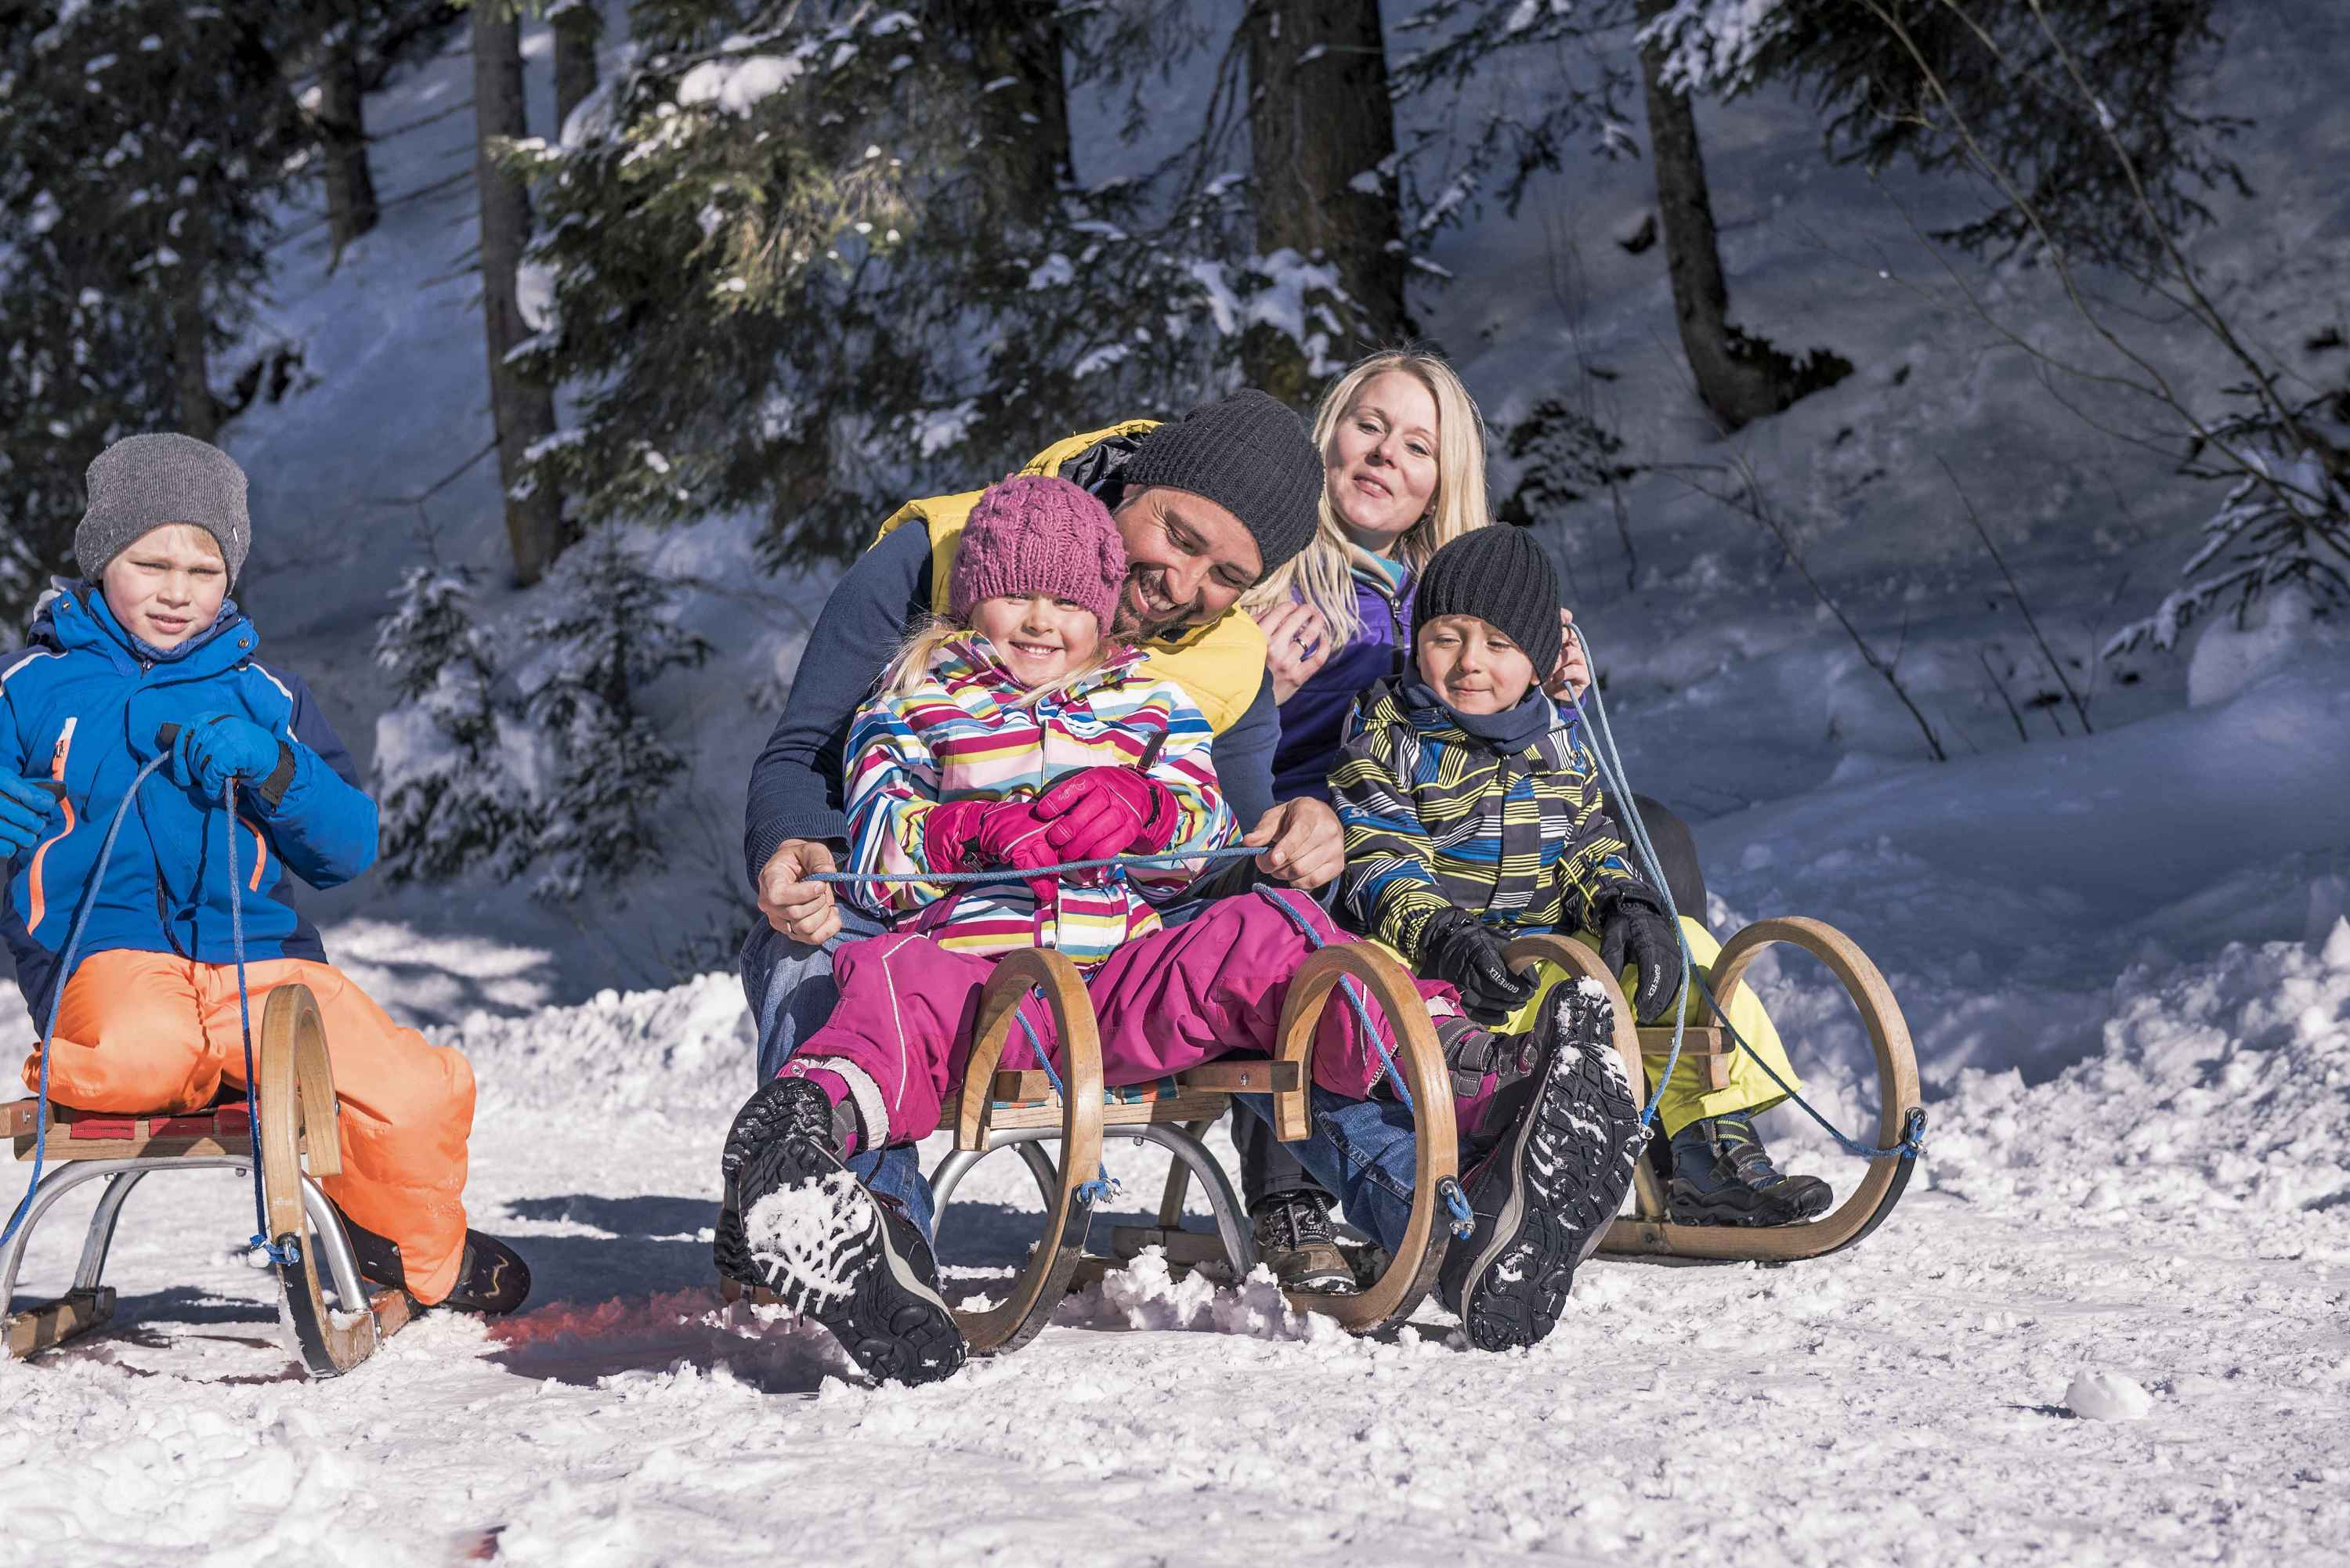 Family winter holidays in Gastein